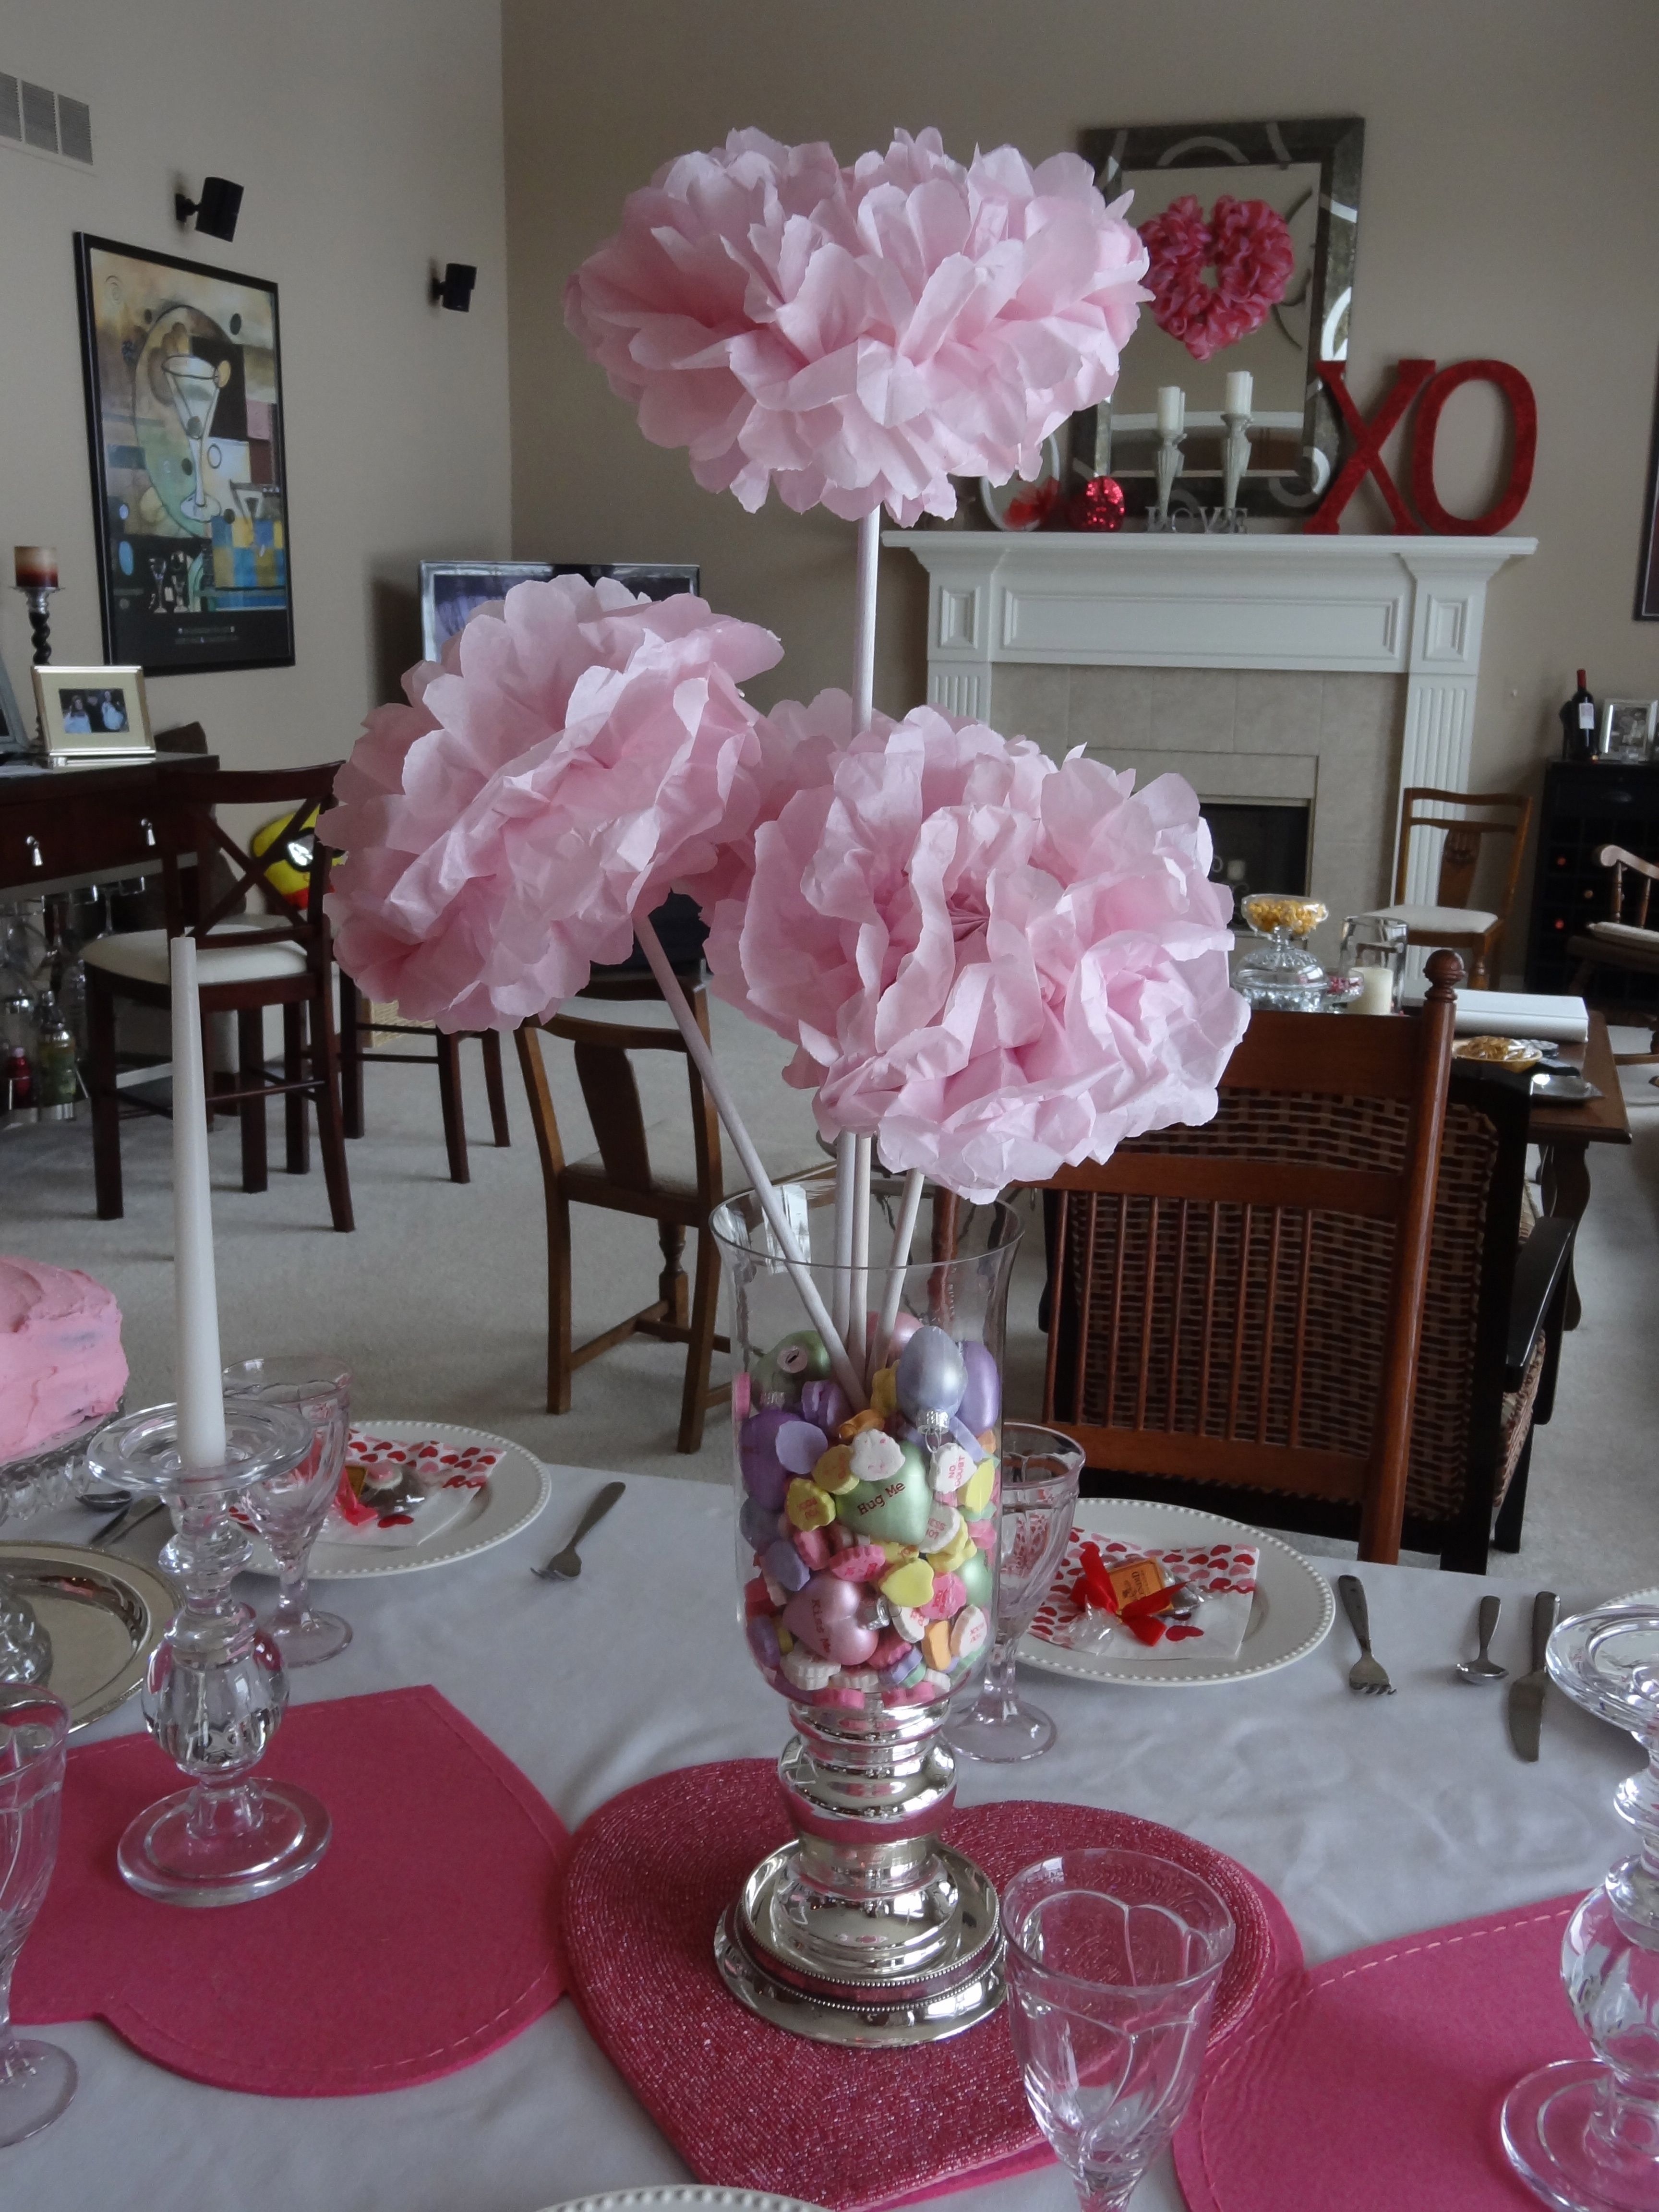 Sweetheart Tissue Paper Flower Centerpiece But With Mexican Candies For The Candy Tab Valentine Centerpieces Girls Party Decorations Paper Flower Centerpieces